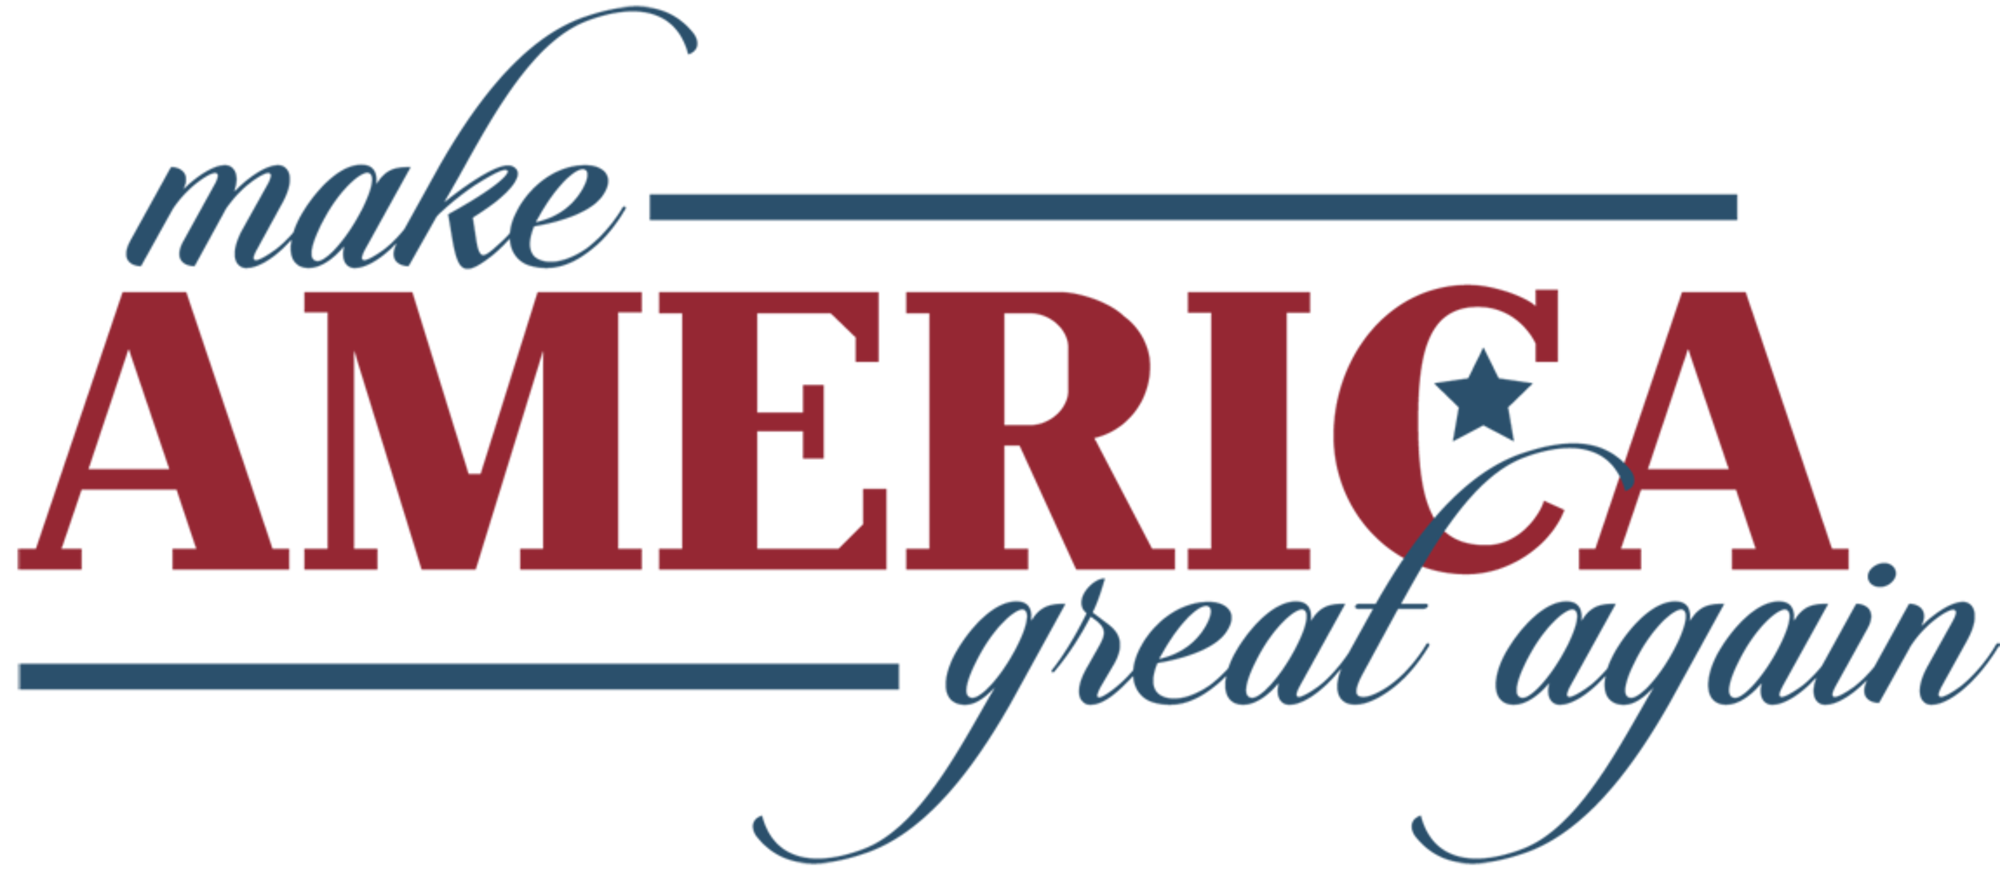 2000x870 Results For Make America Great Again Logo Vector